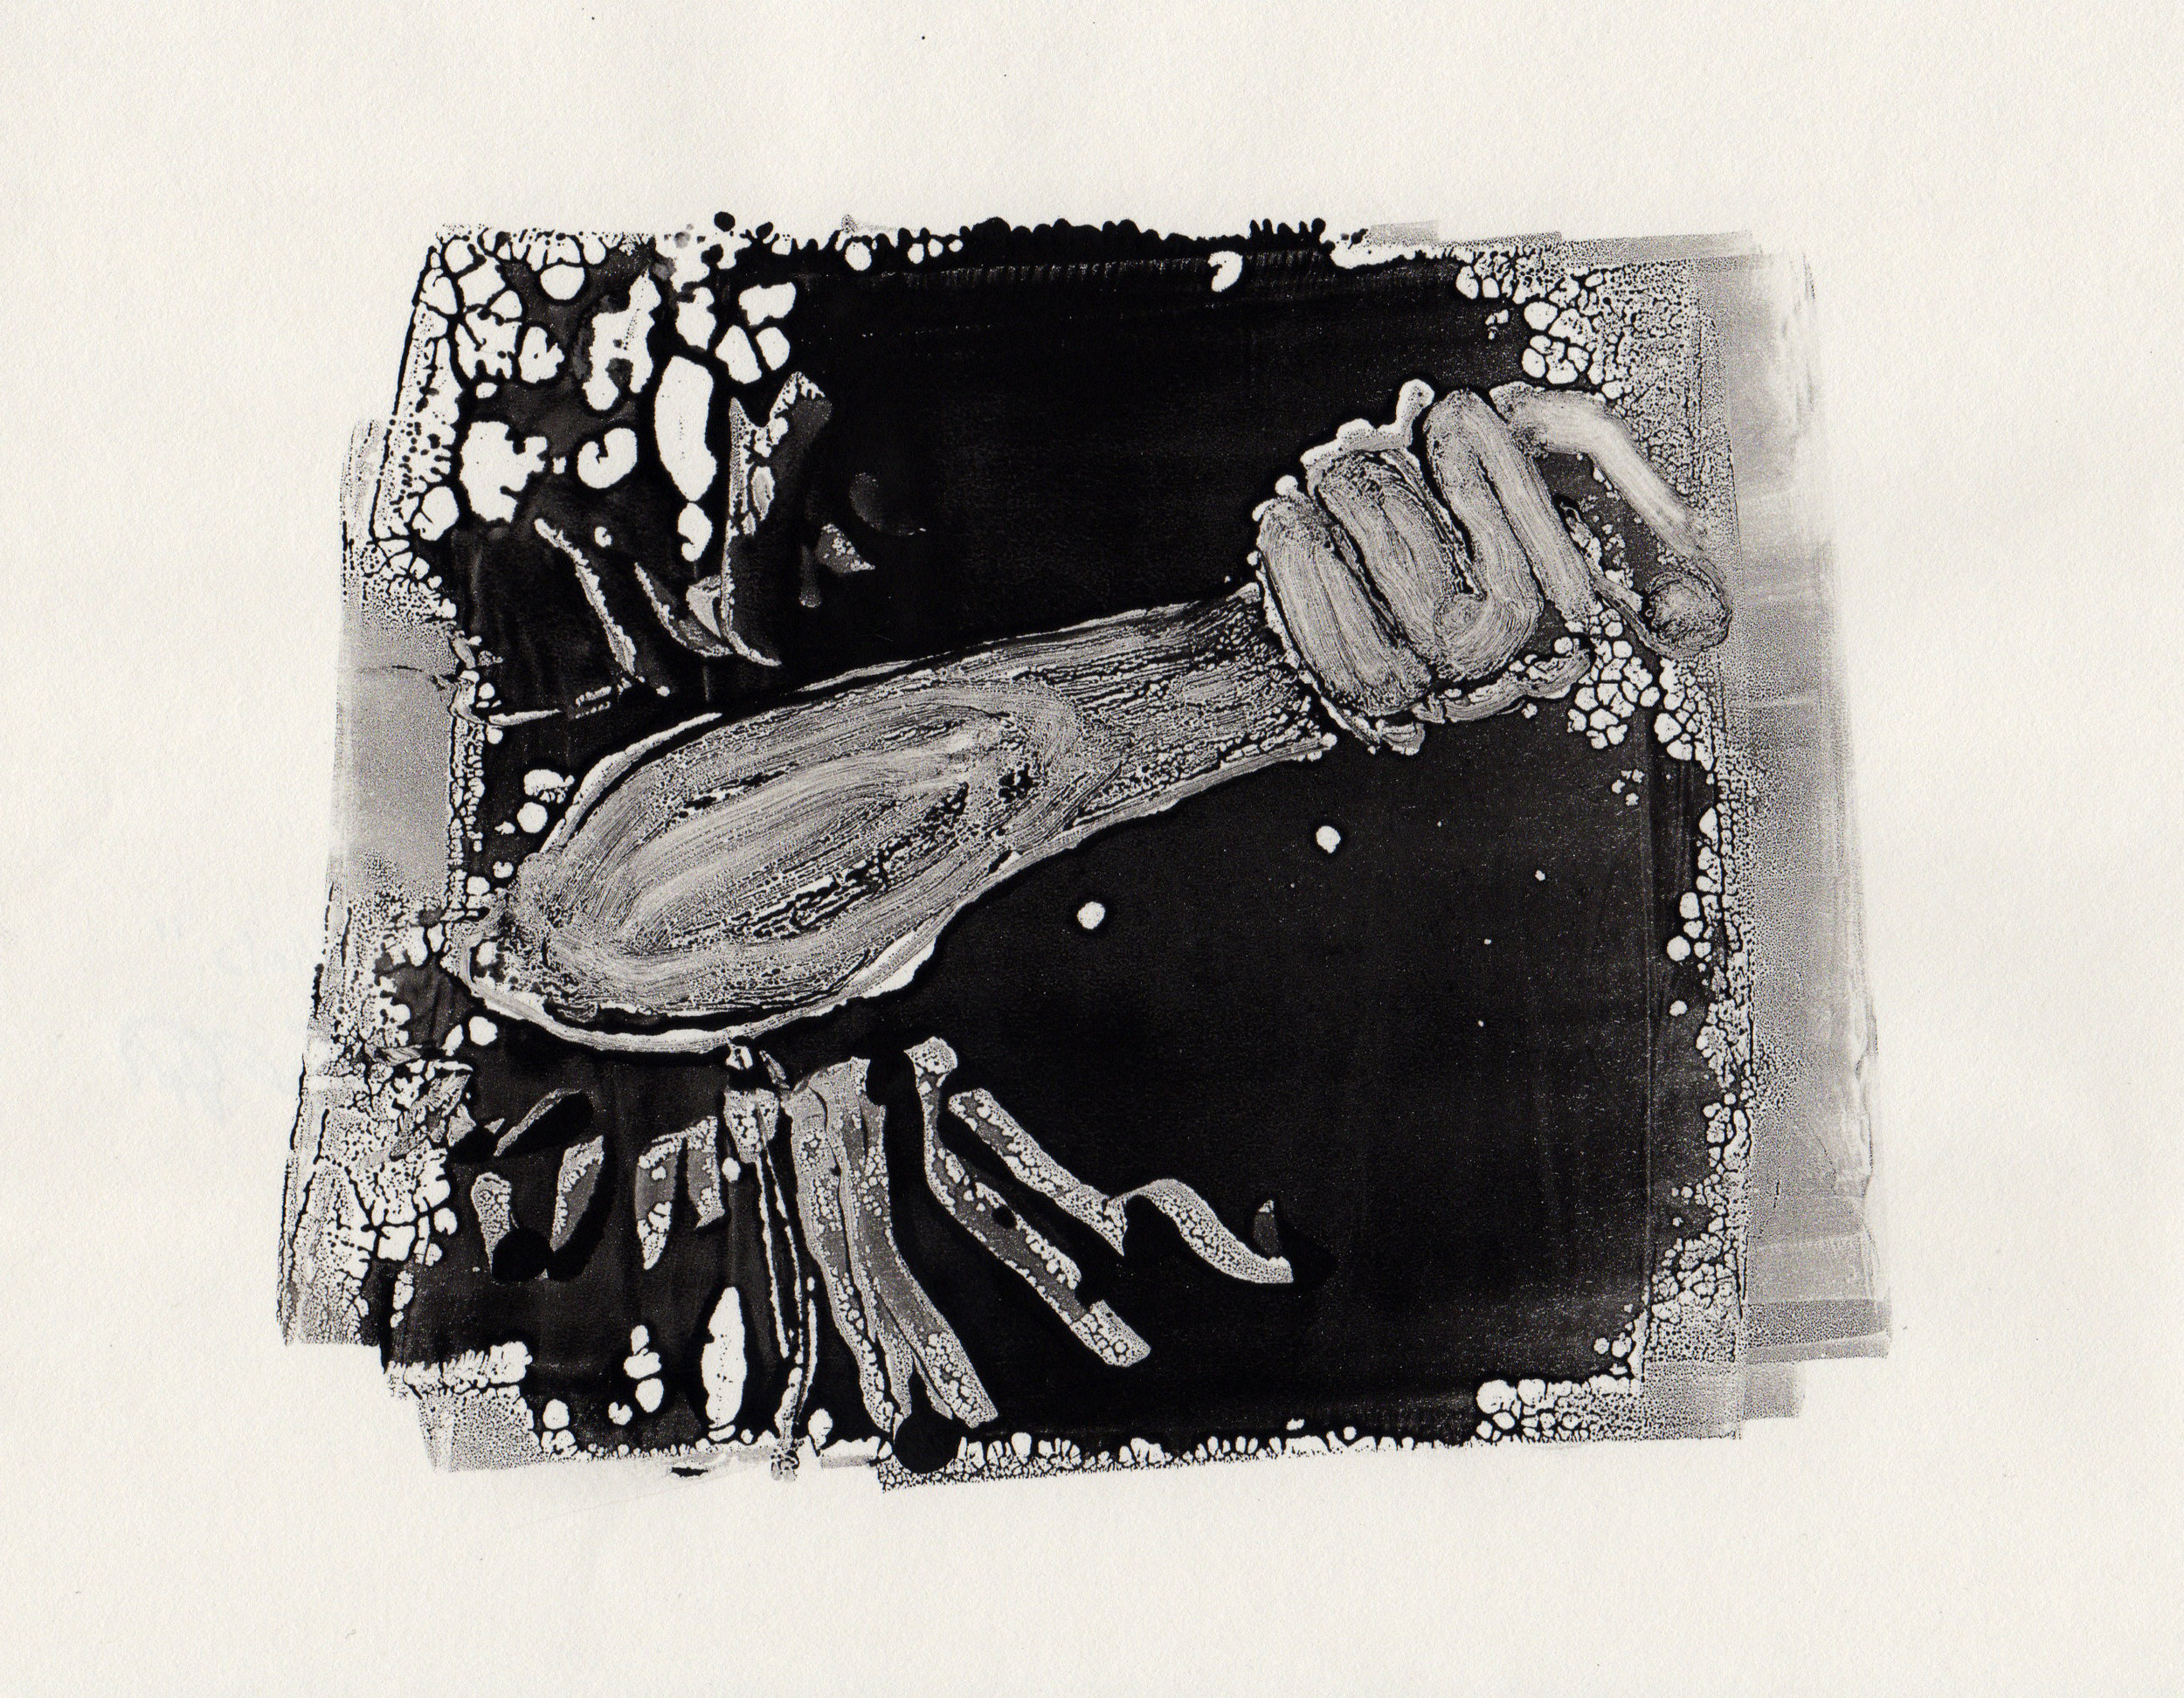 Punching the Wind, 2014, gelatin monotype, 10x9 inches